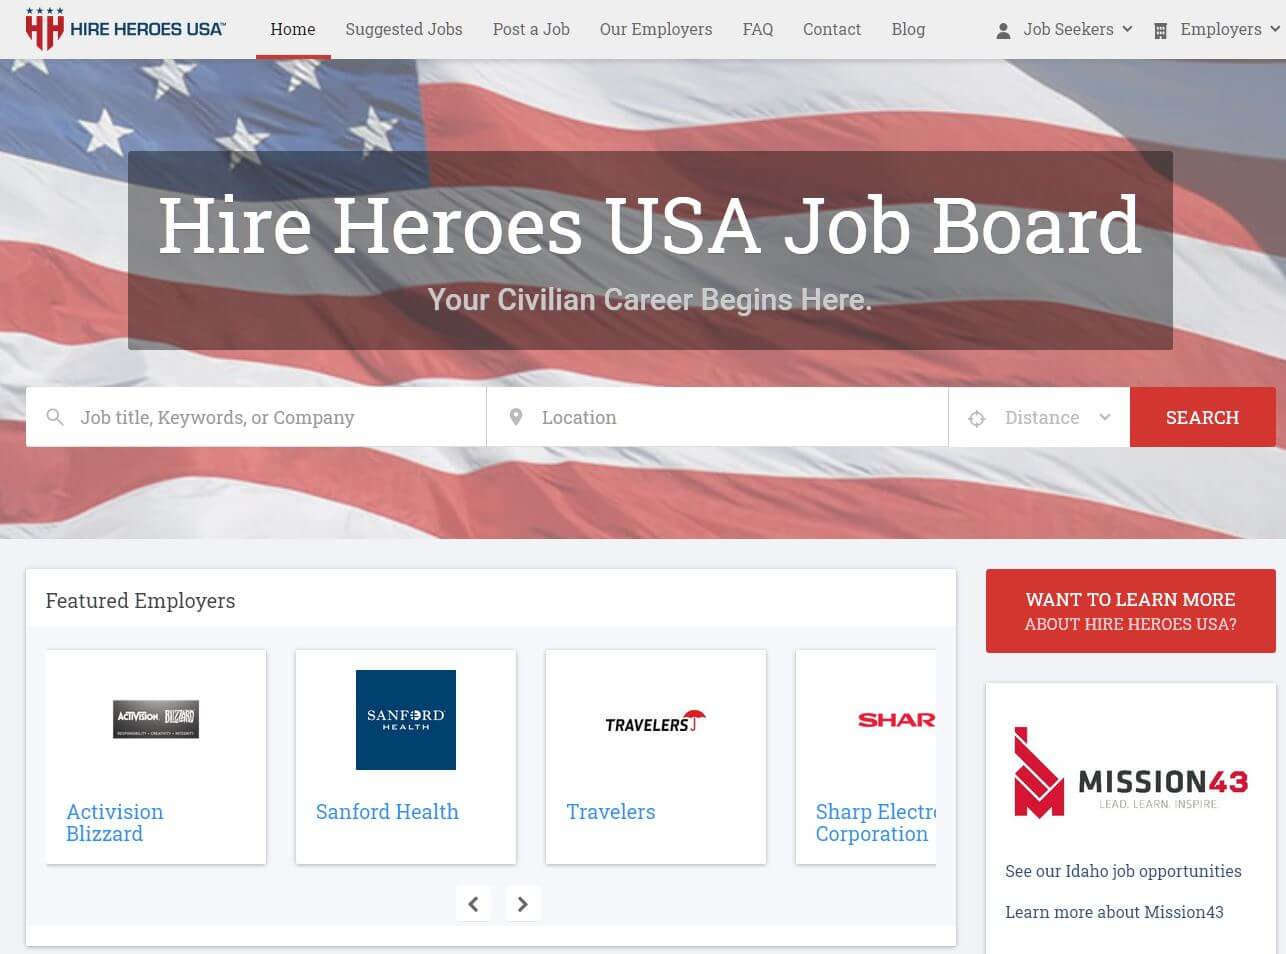 Hire Heroes USA job board has multiple job search engines